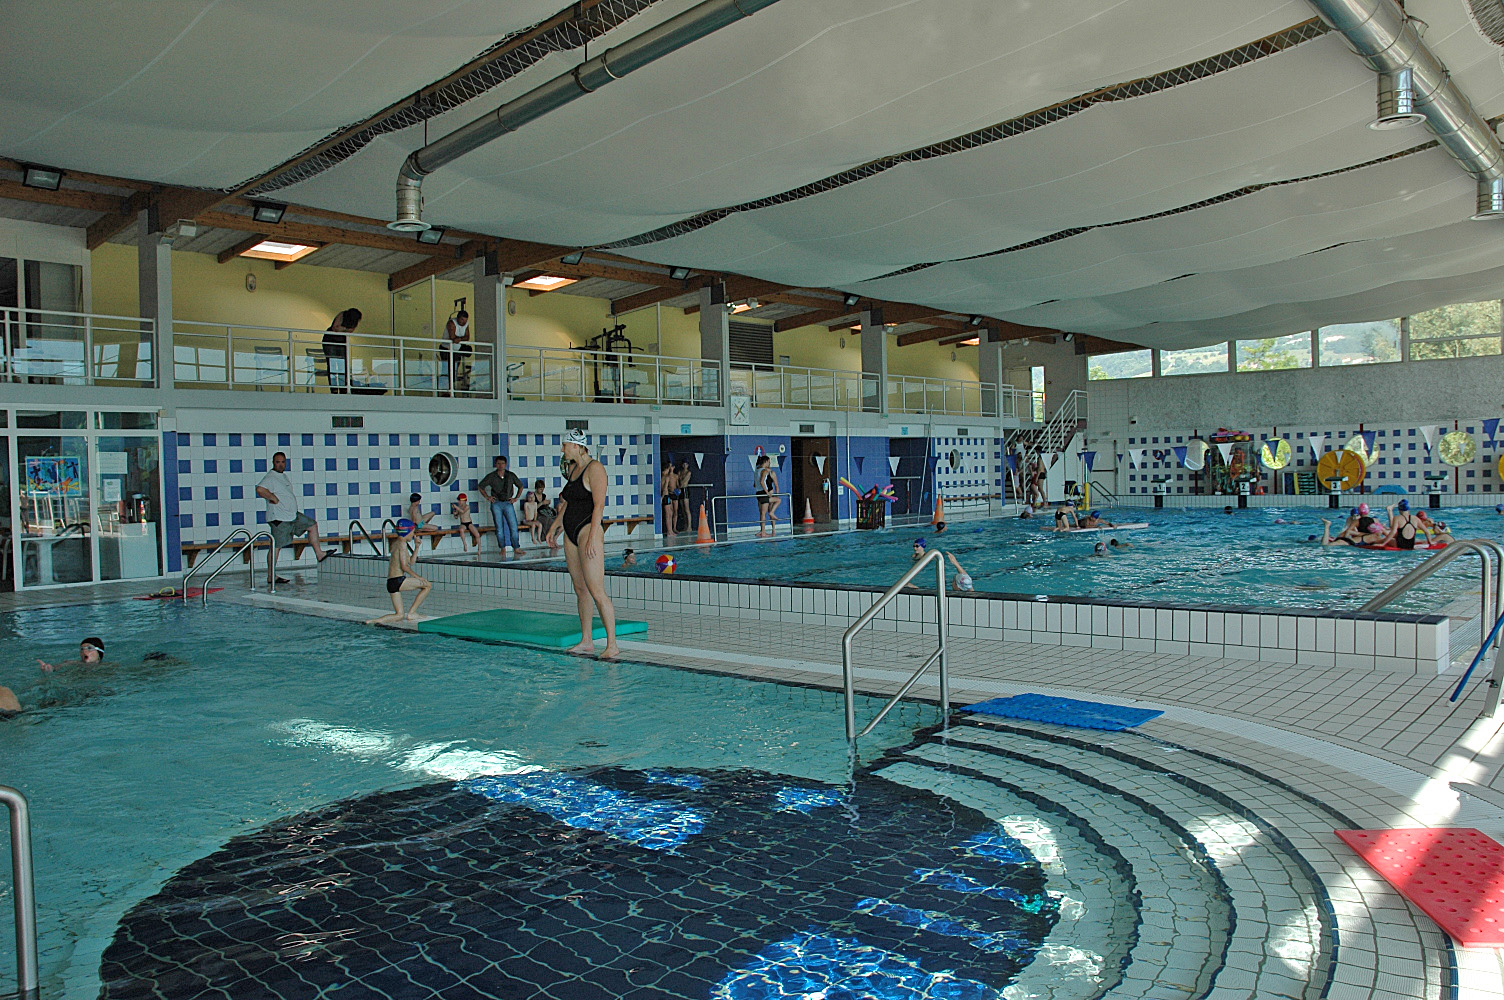 Horaire piscine thouars id es de for Club piscine dorion horaire